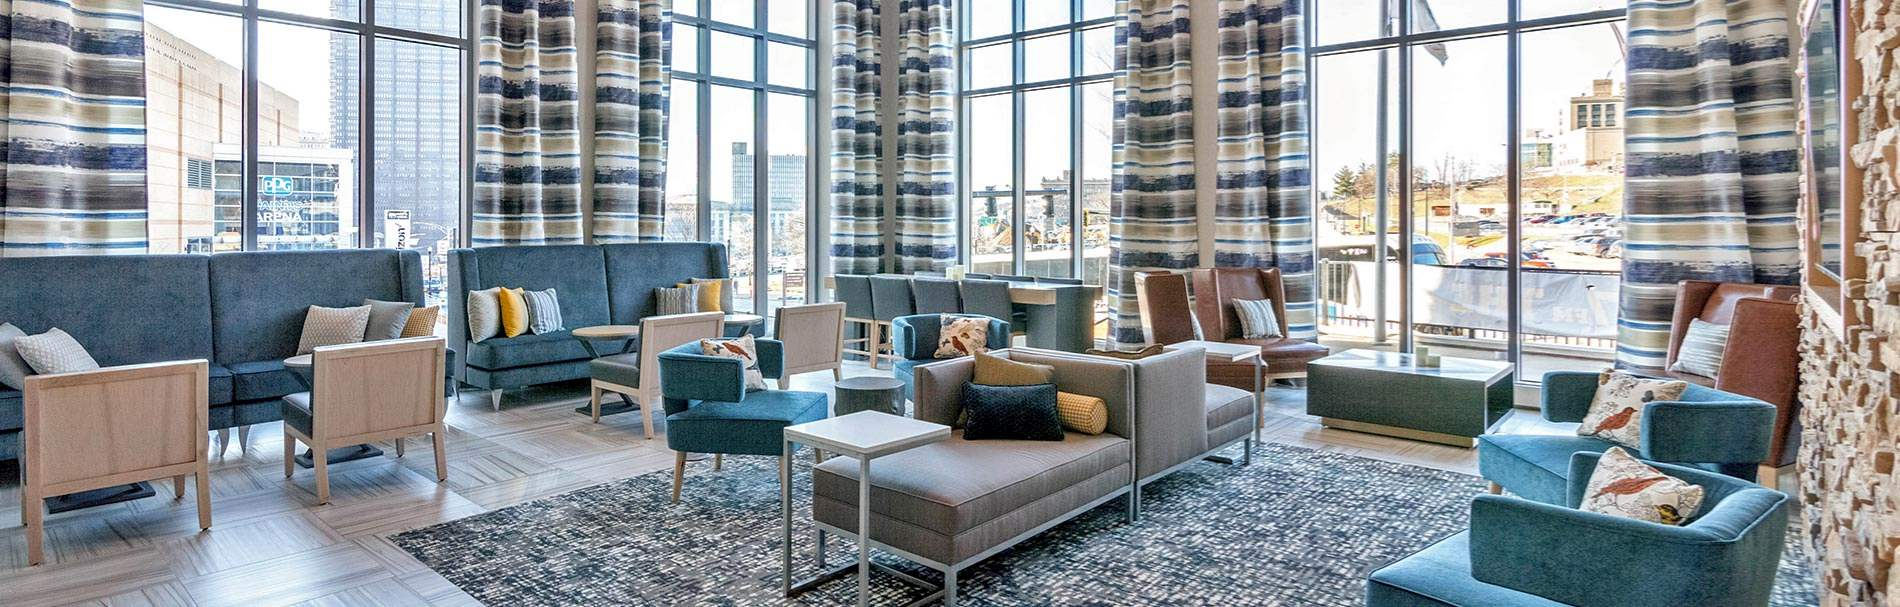 Cambria Hotel Pittsburgh Downtown, Pennsylvania